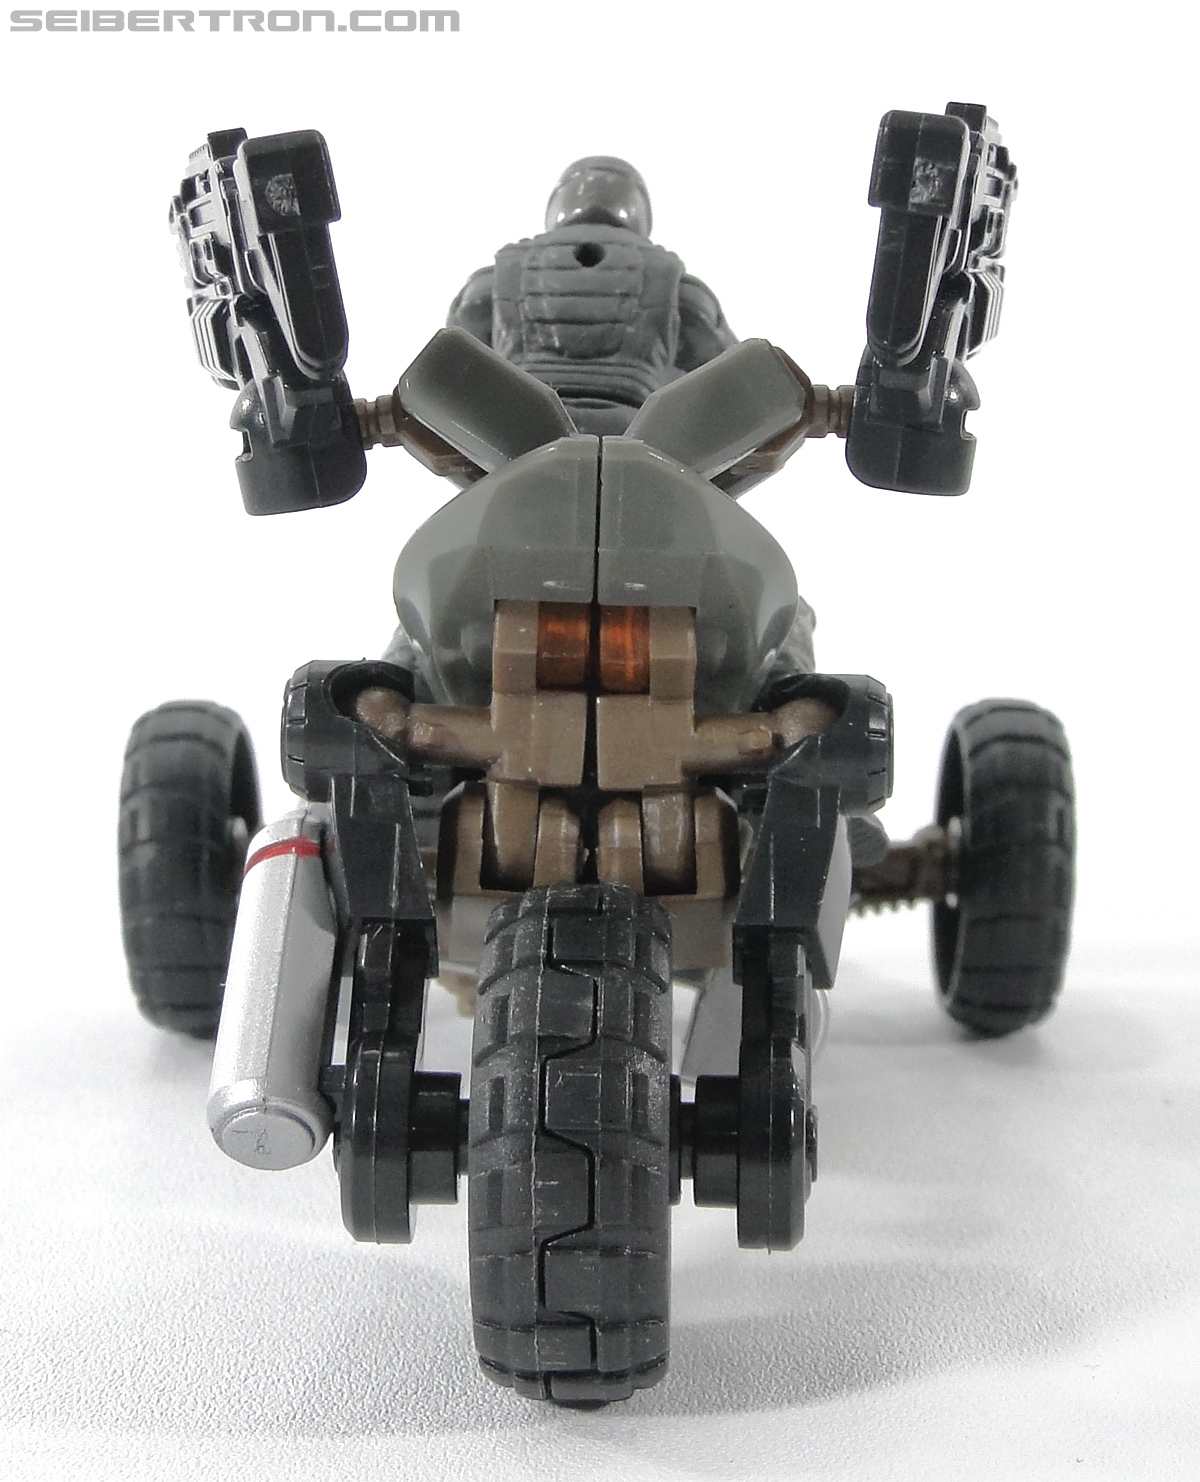 Transformers Dark of the Moon Spike Witwicky (Image #45 of 70)